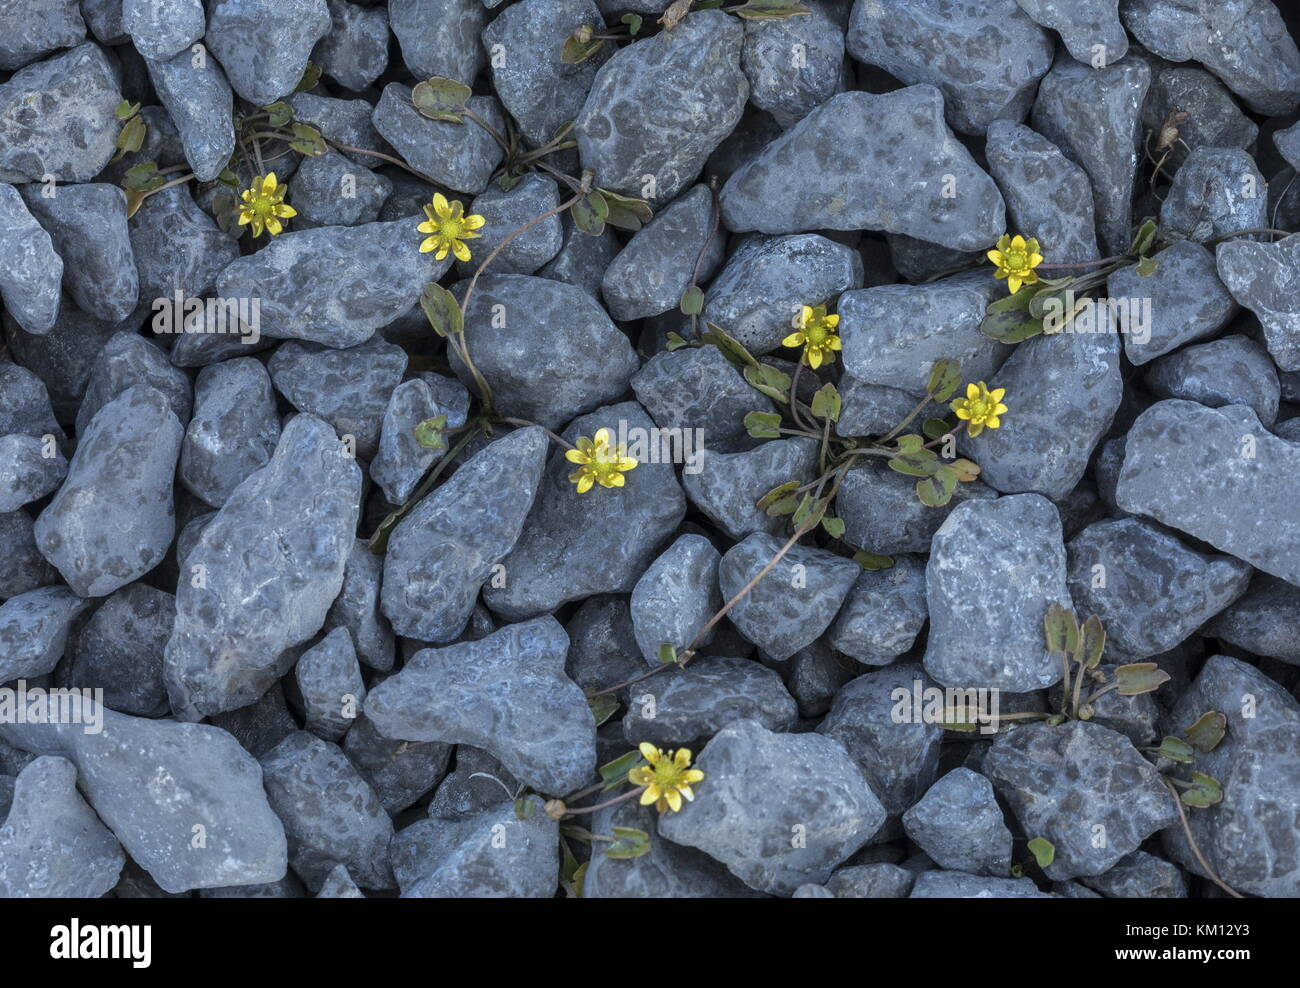 Alkali buttercup or Seaside buttercup, Ranunculus cymbalaria, with runners amongst limestone pebbles. Newfoundland. - Stock Image